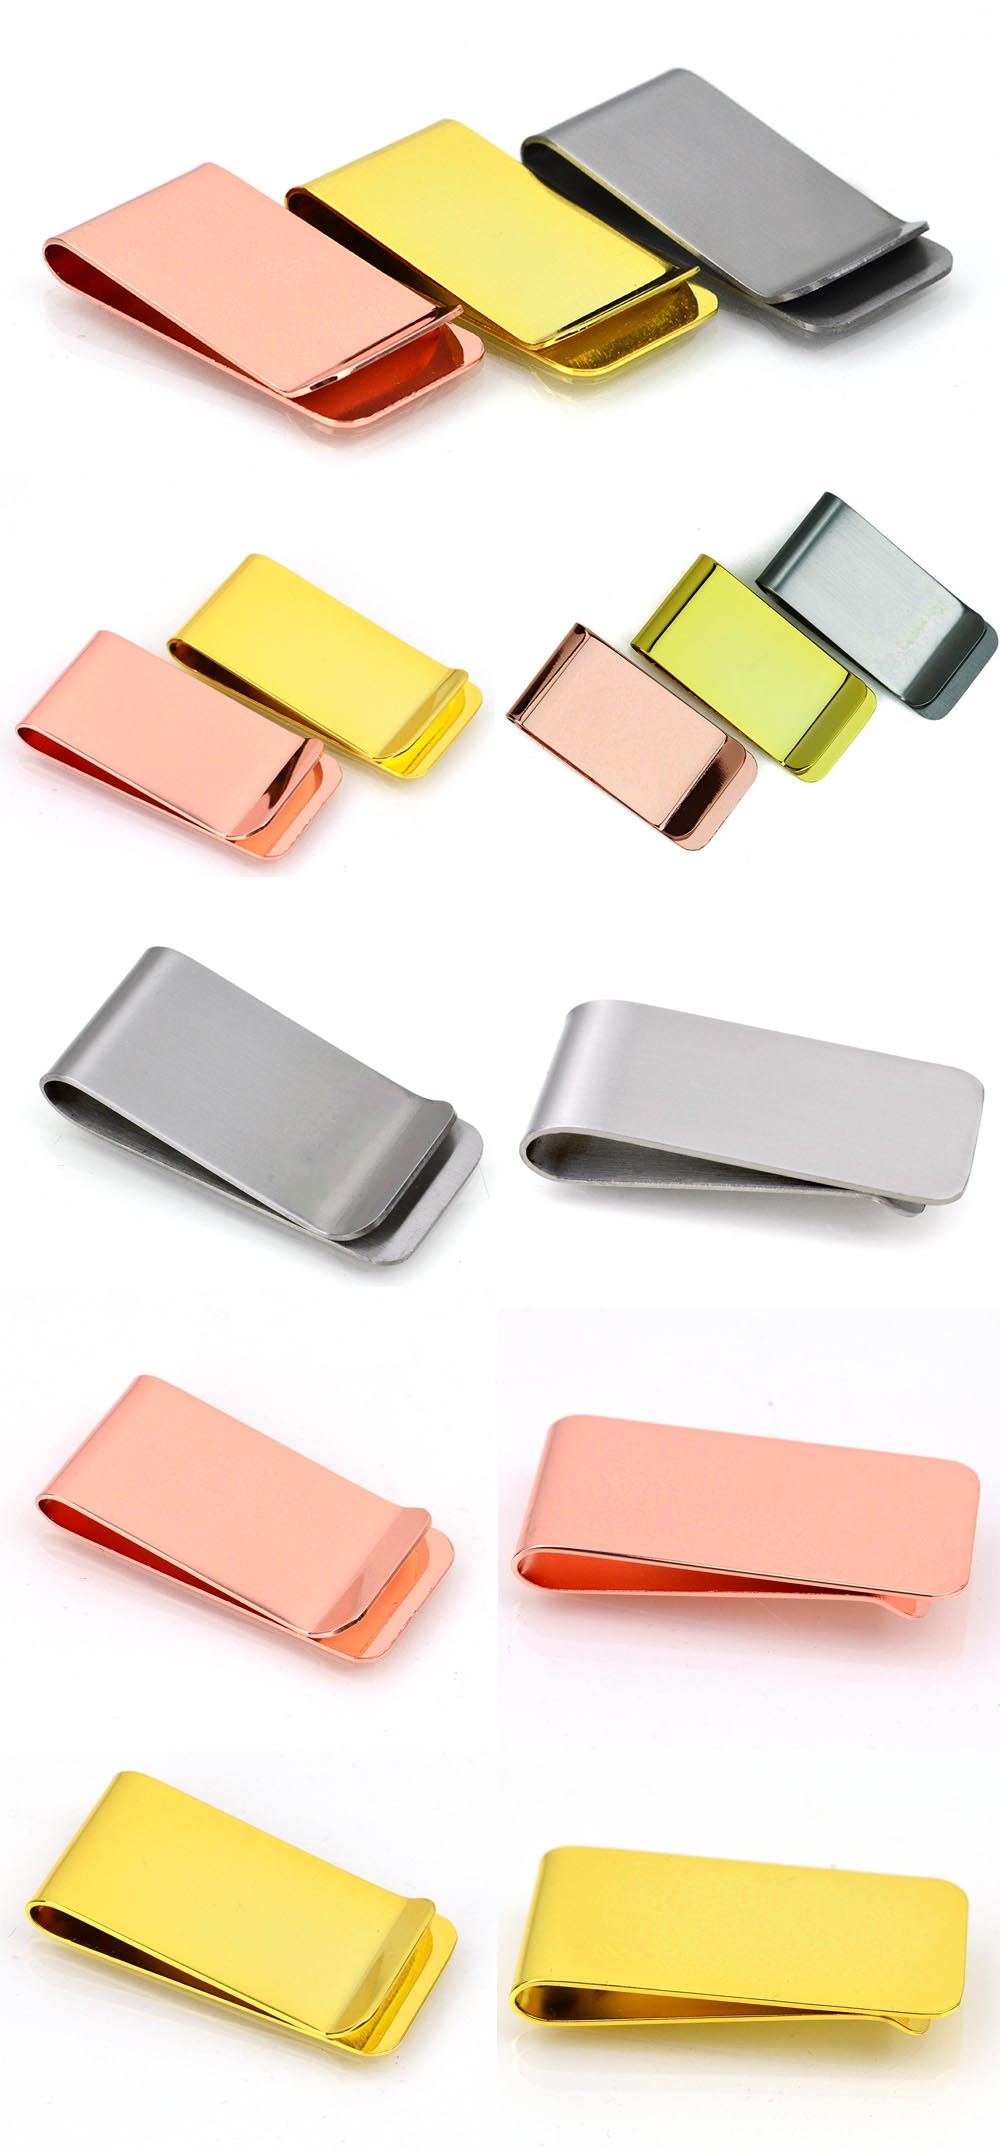 Best Selling Men Or Women Wallet Bar Money Clip For Holding Money